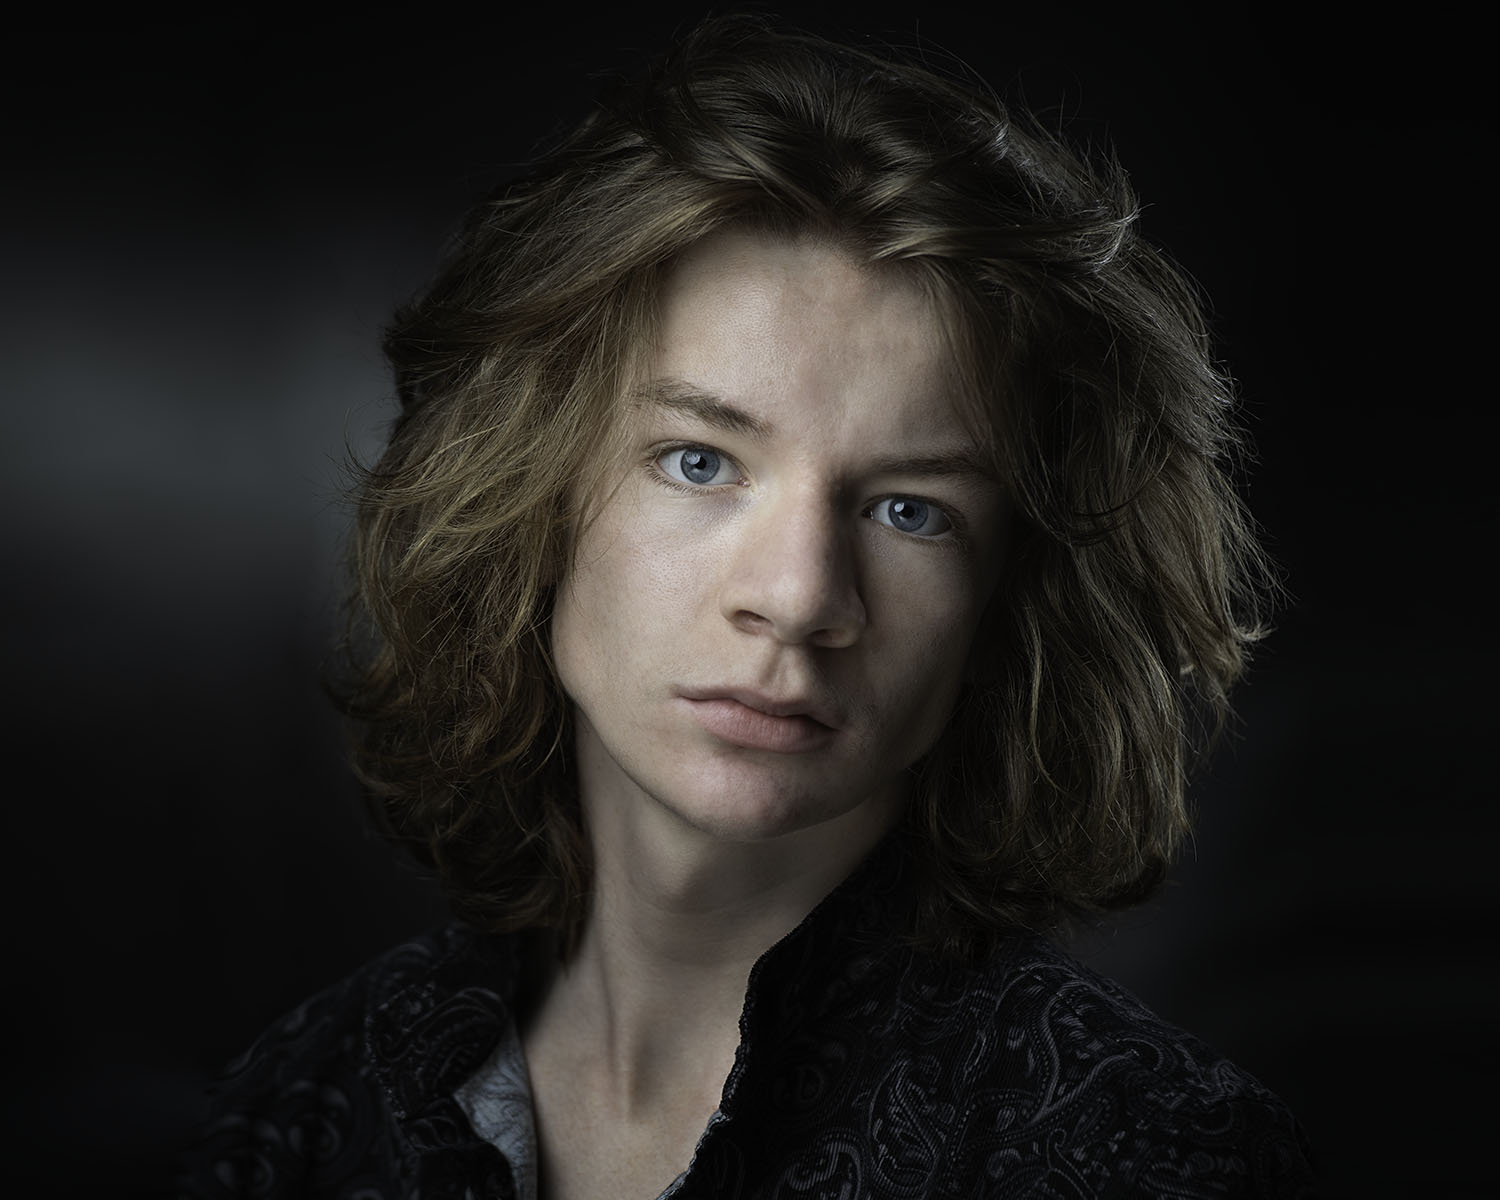 Young Actors Headshot photographed in landscape on a black background